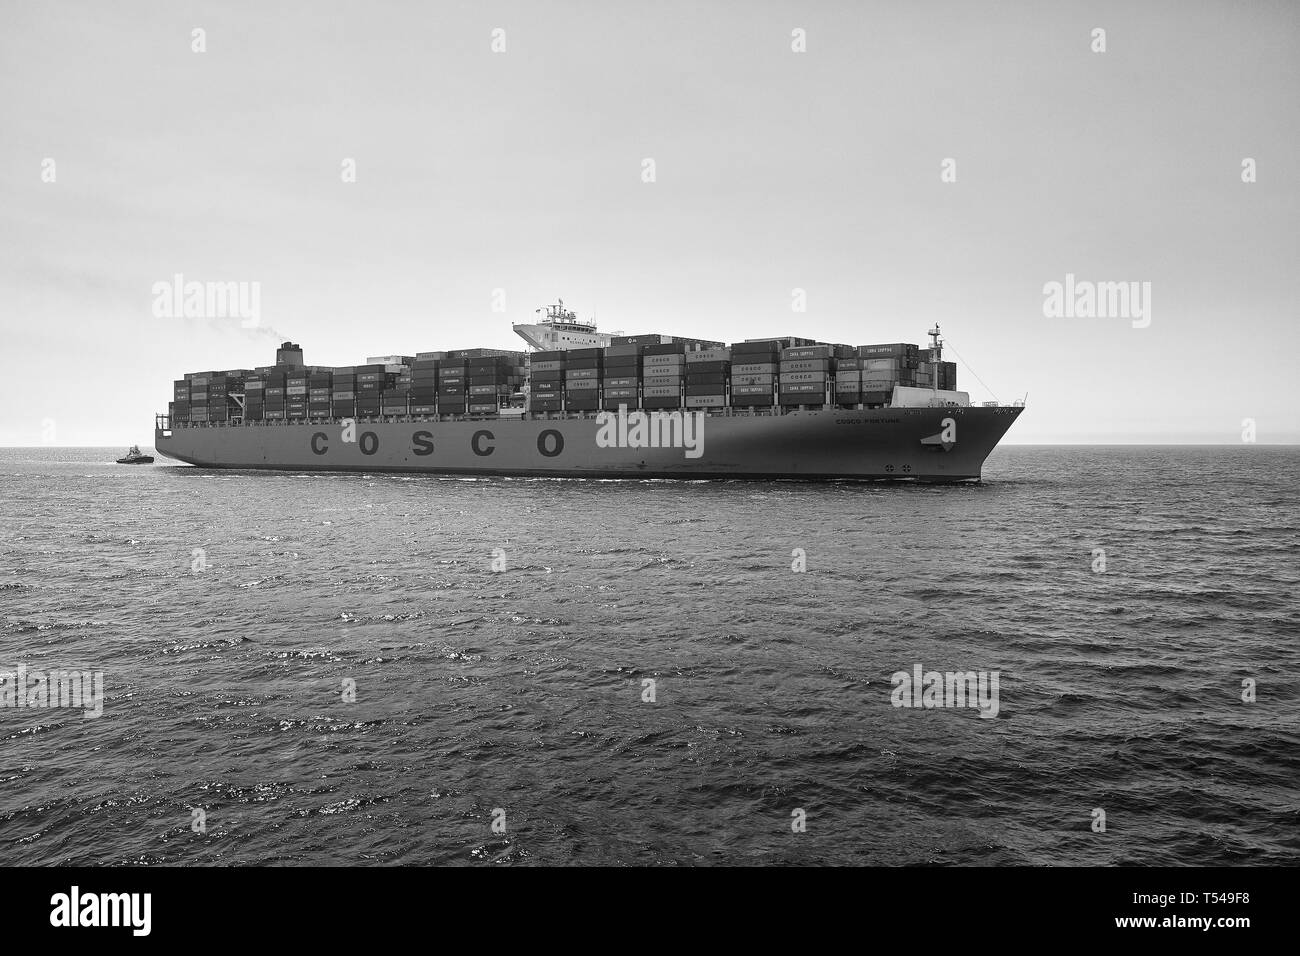 Black And White Image Of The COSCO Shipping Container Ship, COSCO FORTUNE, Entering The Port Of Long Beach, California, USA. - Stock Image